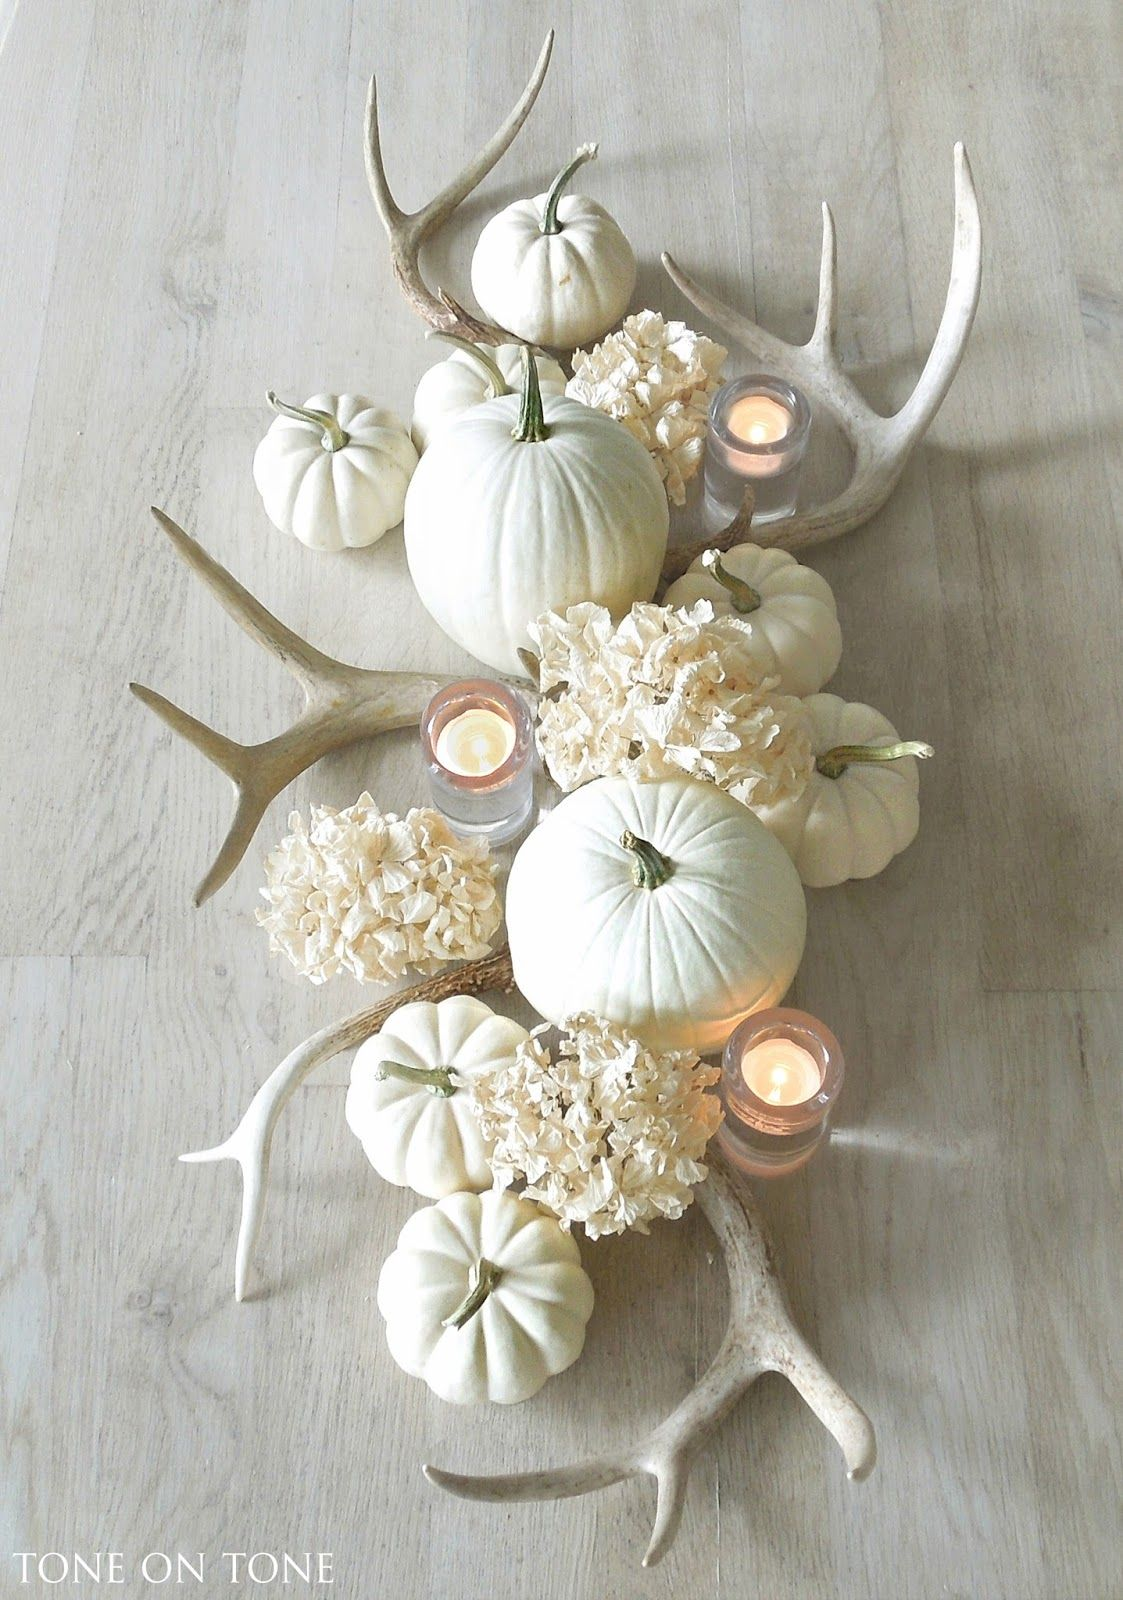 30 Fall Flower Arrangements - Ideas for Fall Table Centerpieces